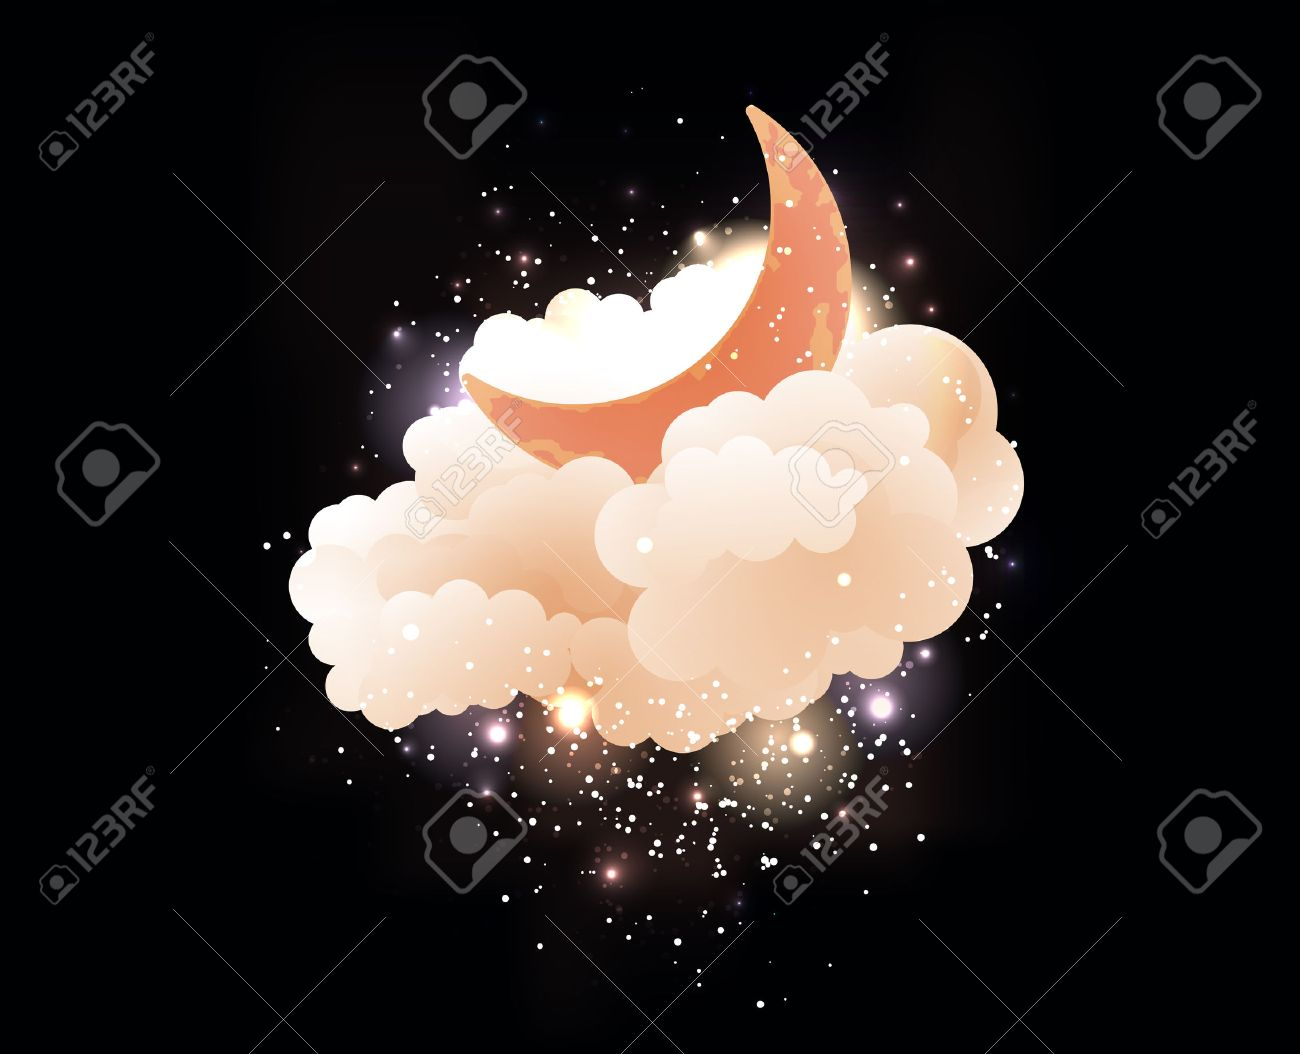 moon clouds and stars